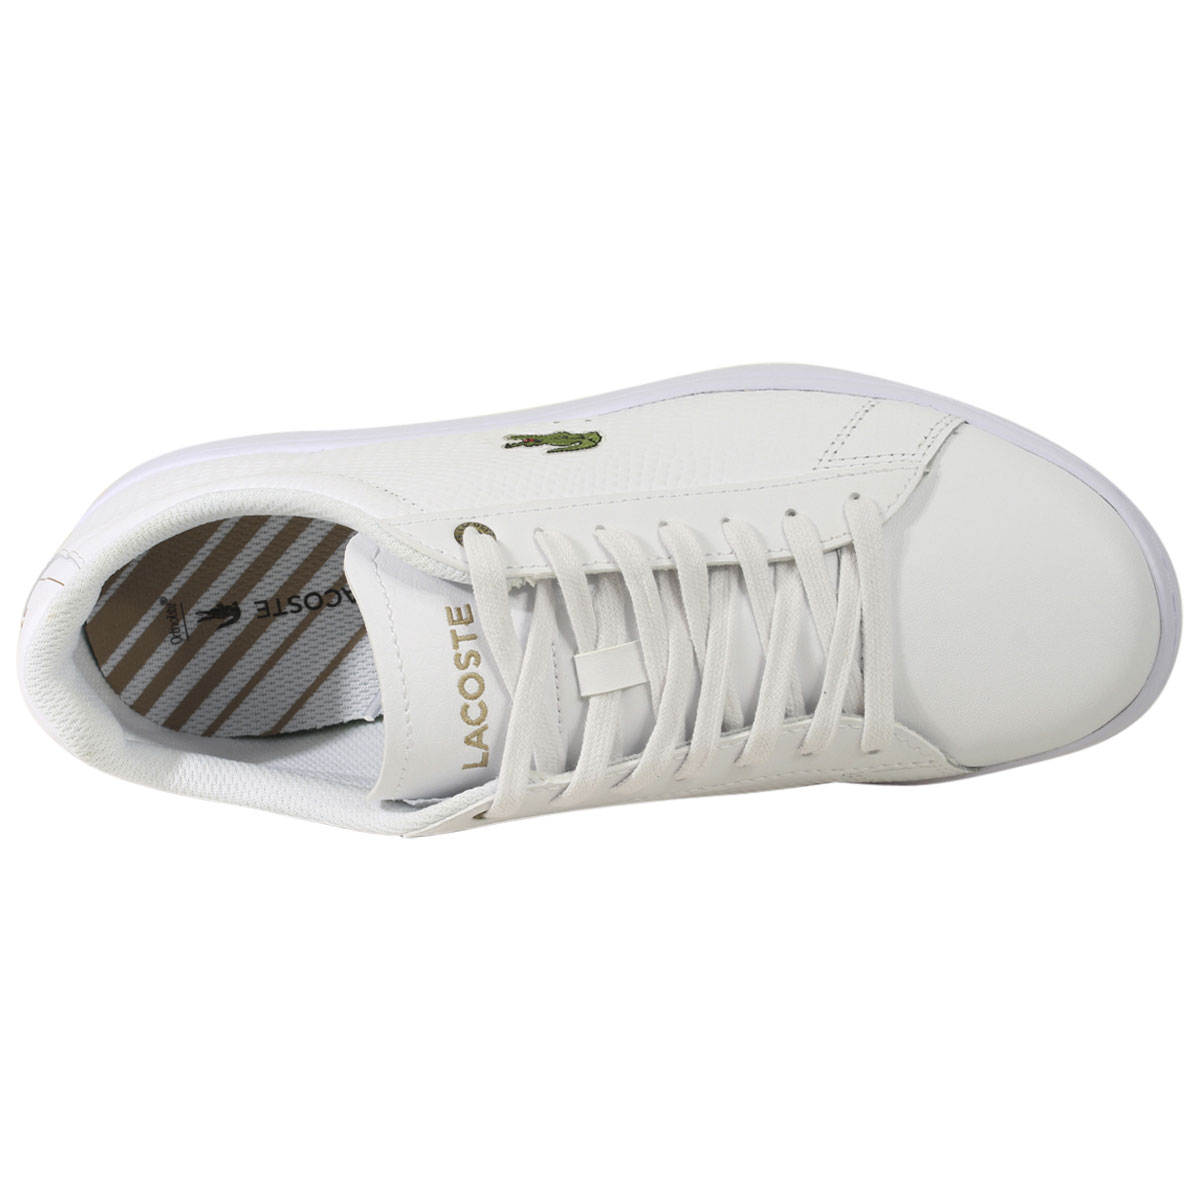 Lacoste-Men-039-s-Carnaby-EVO-118-Trainers-Sneakers-Shoes thumbnail 28